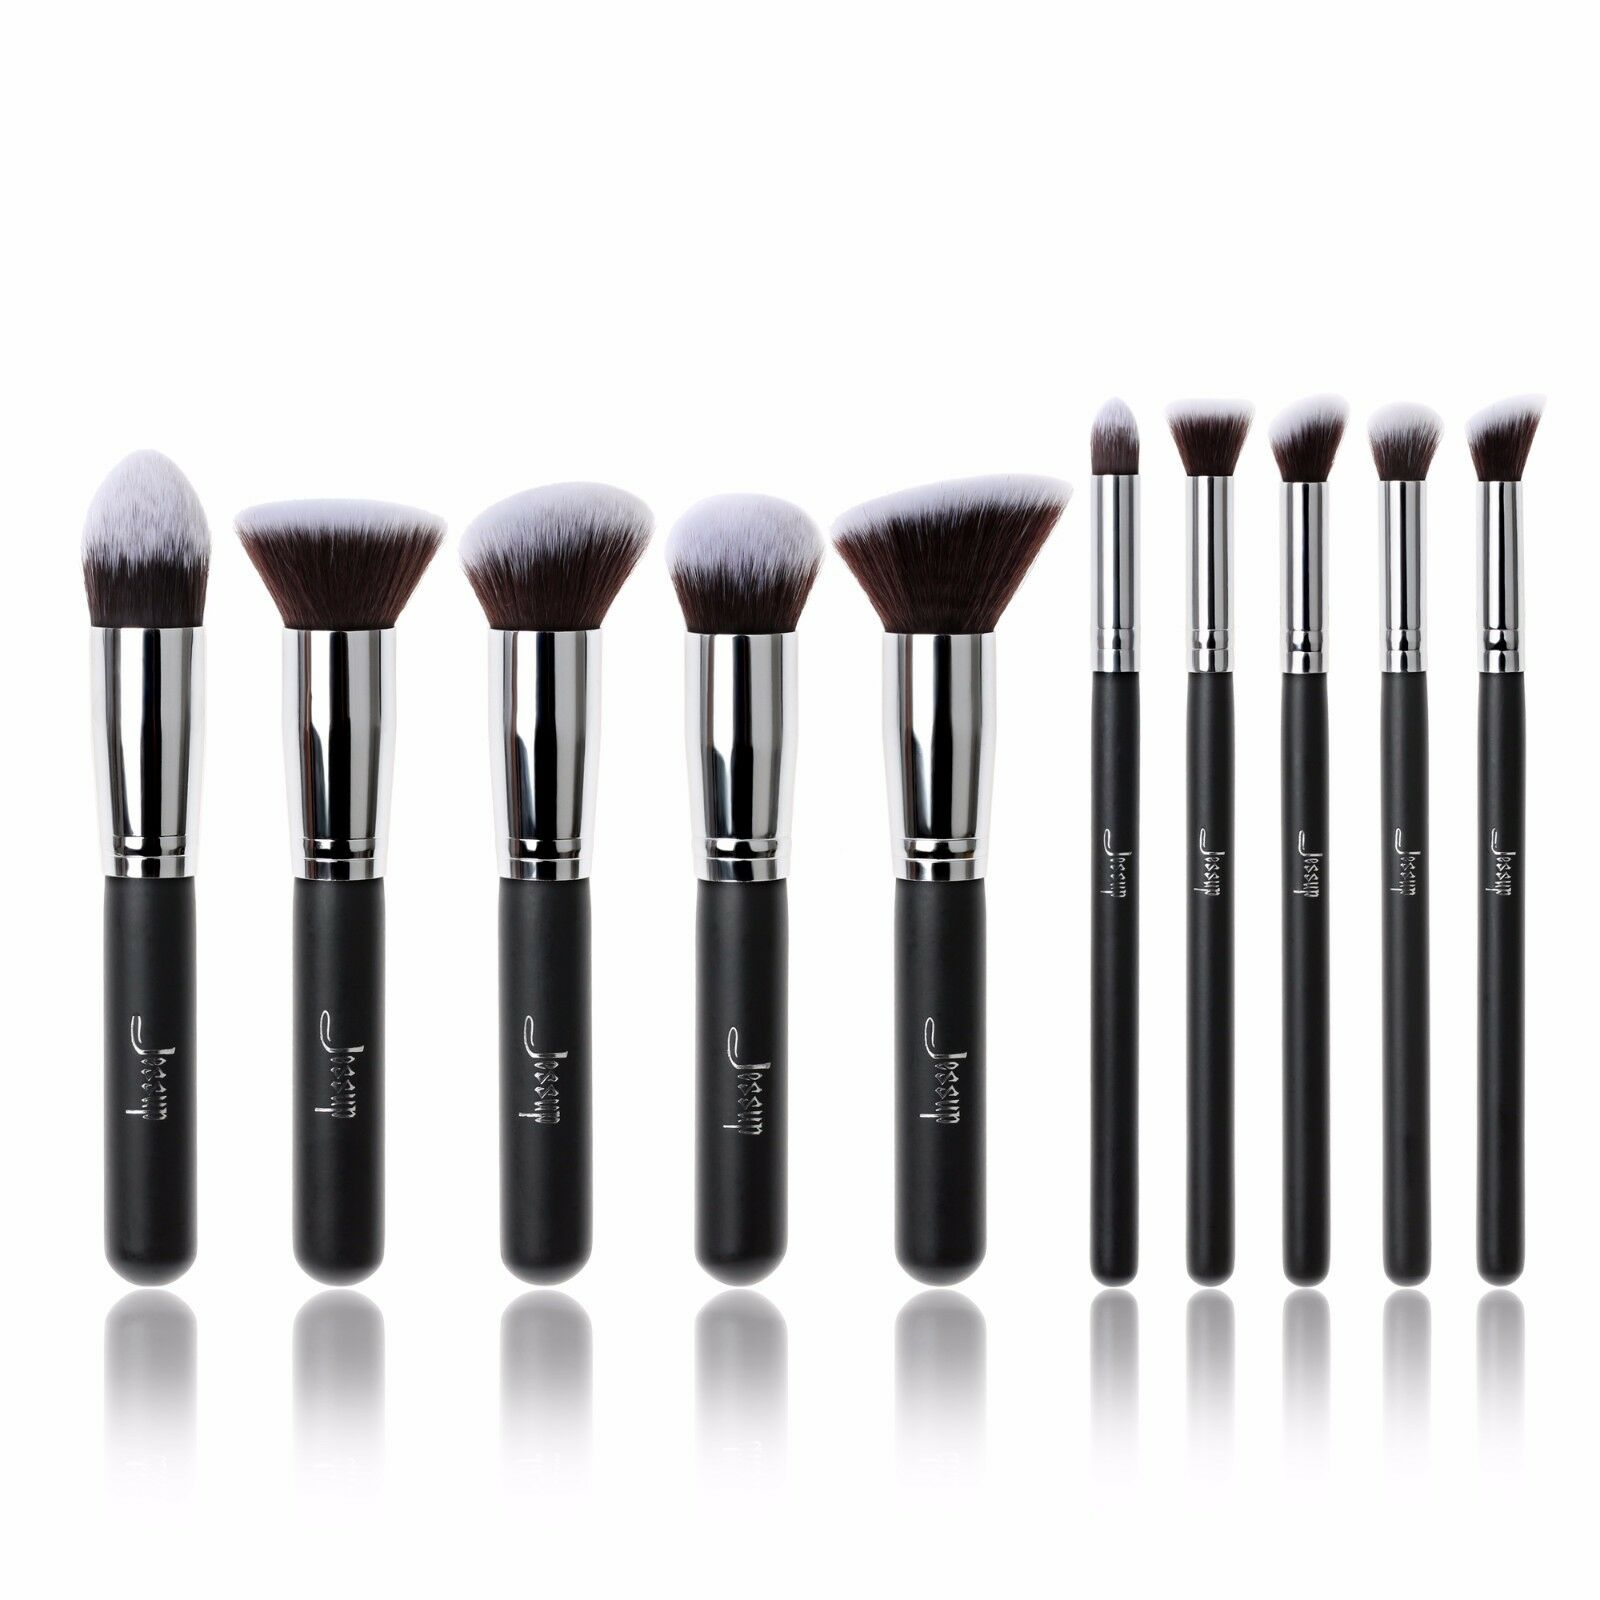 cosmetic brush set. picture 1 of 5 cosmetic brush set